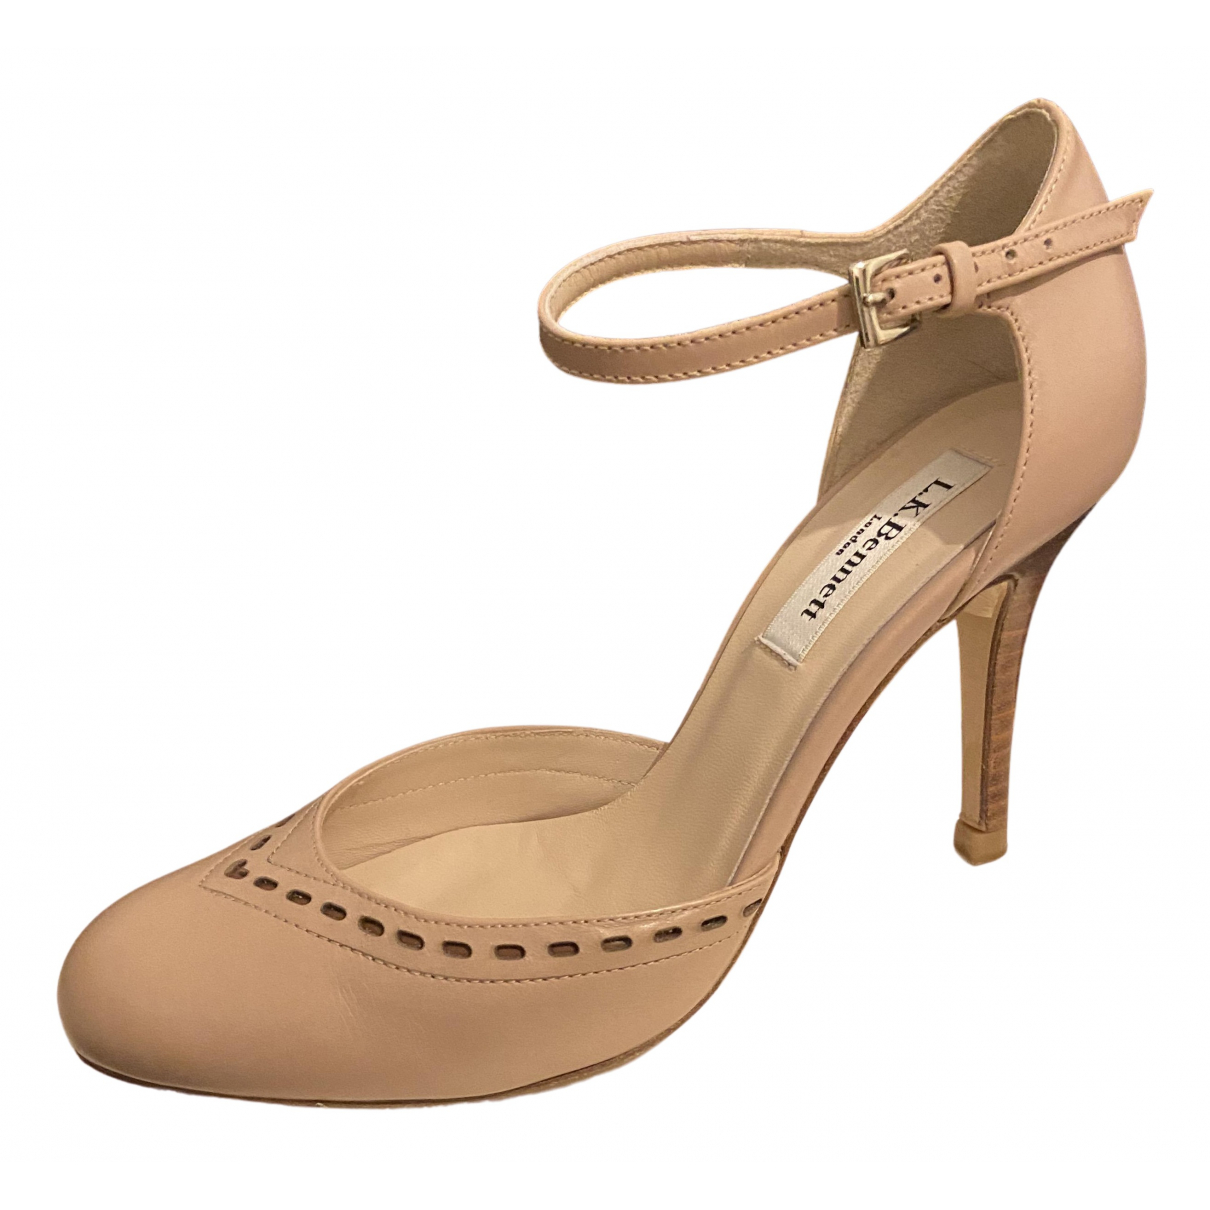 Lk Bennett N Beige Leather Heels for Women 37 EU